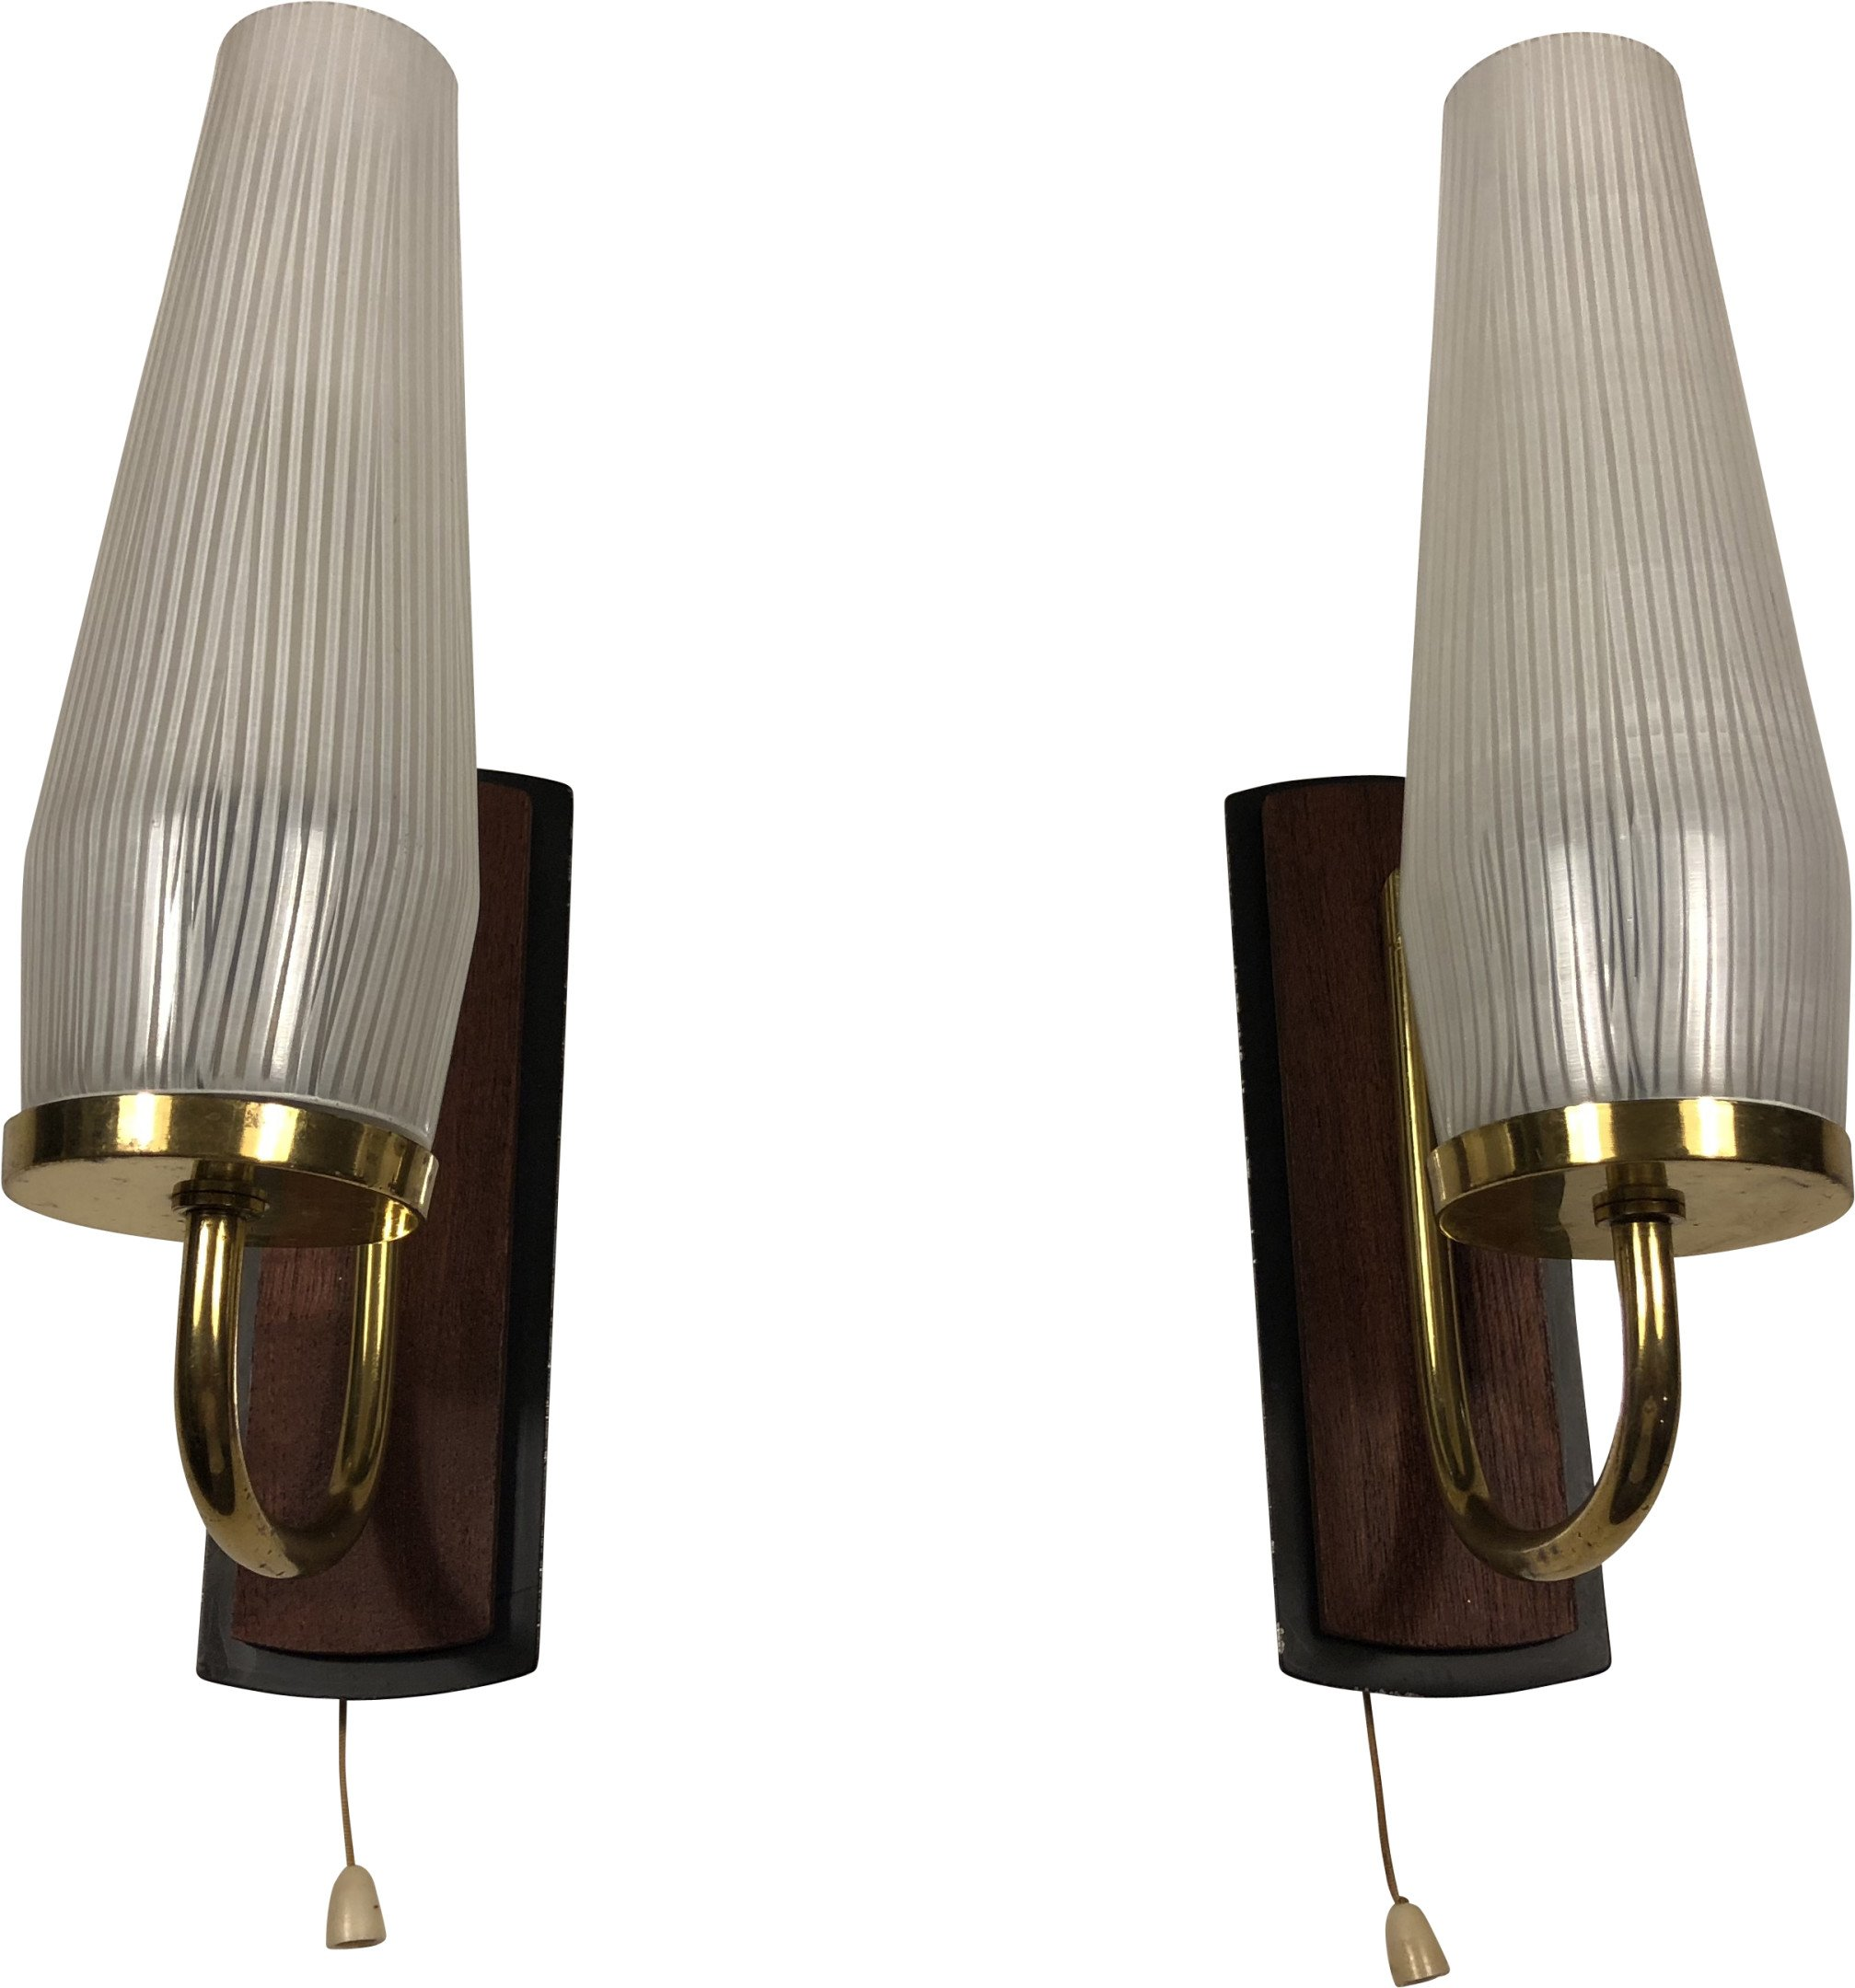 Pair of Rockabilly-Style Sconces, Germany, 1960s